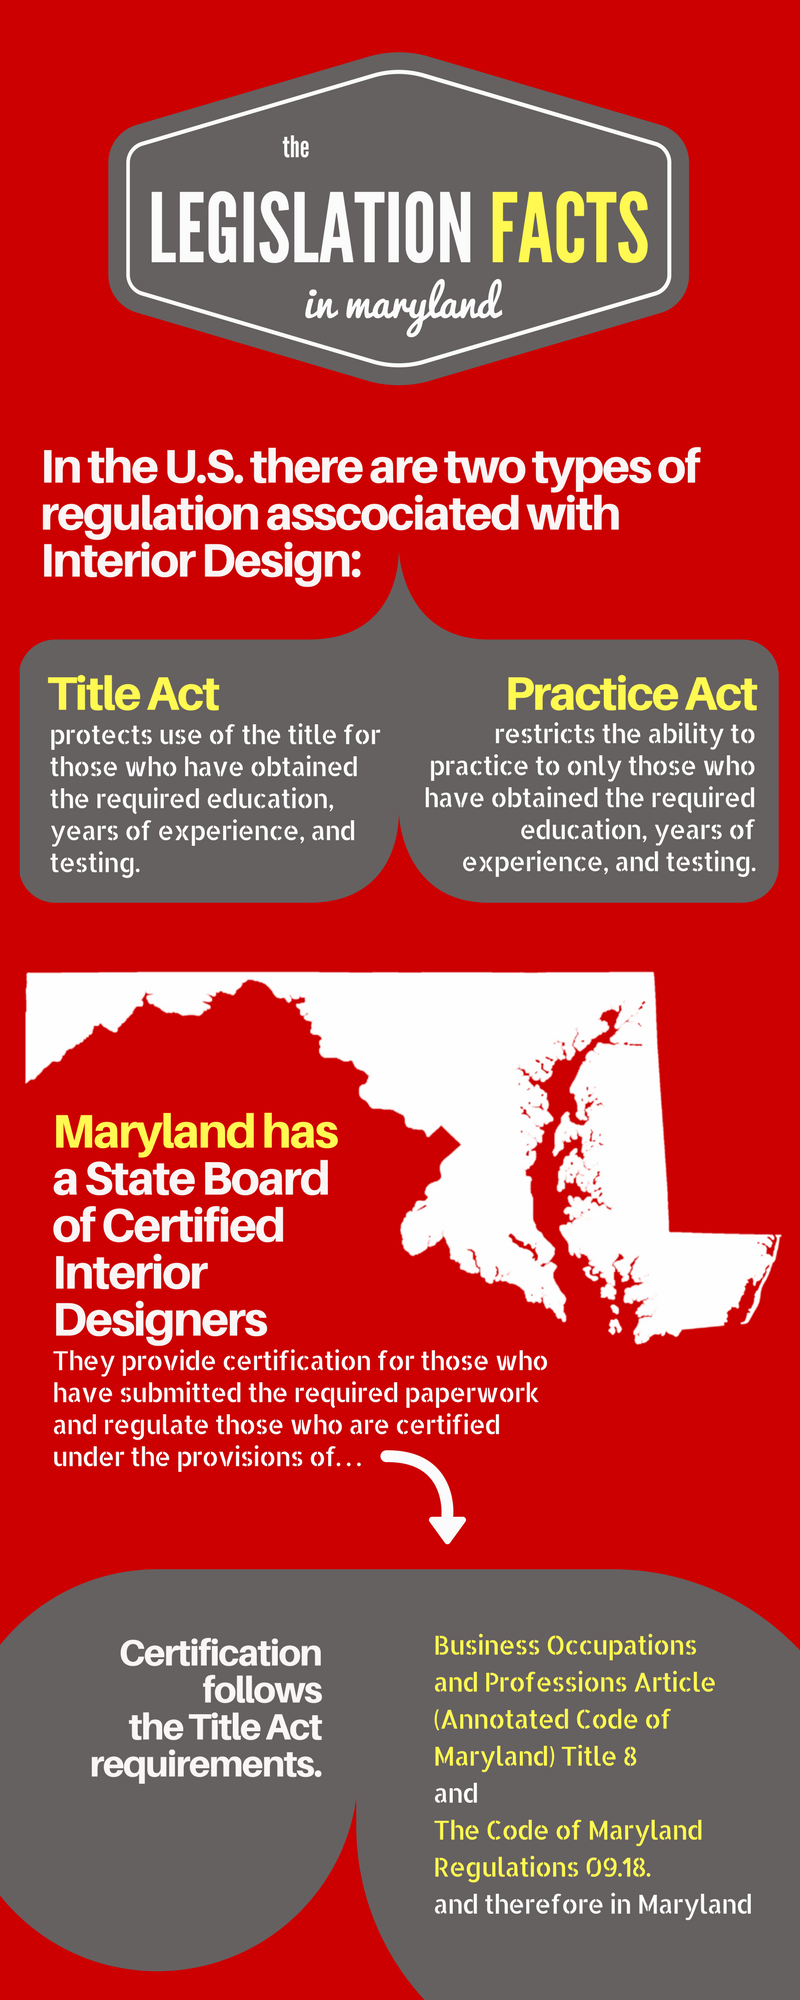 legislation advocacy maryland coalition for interior design